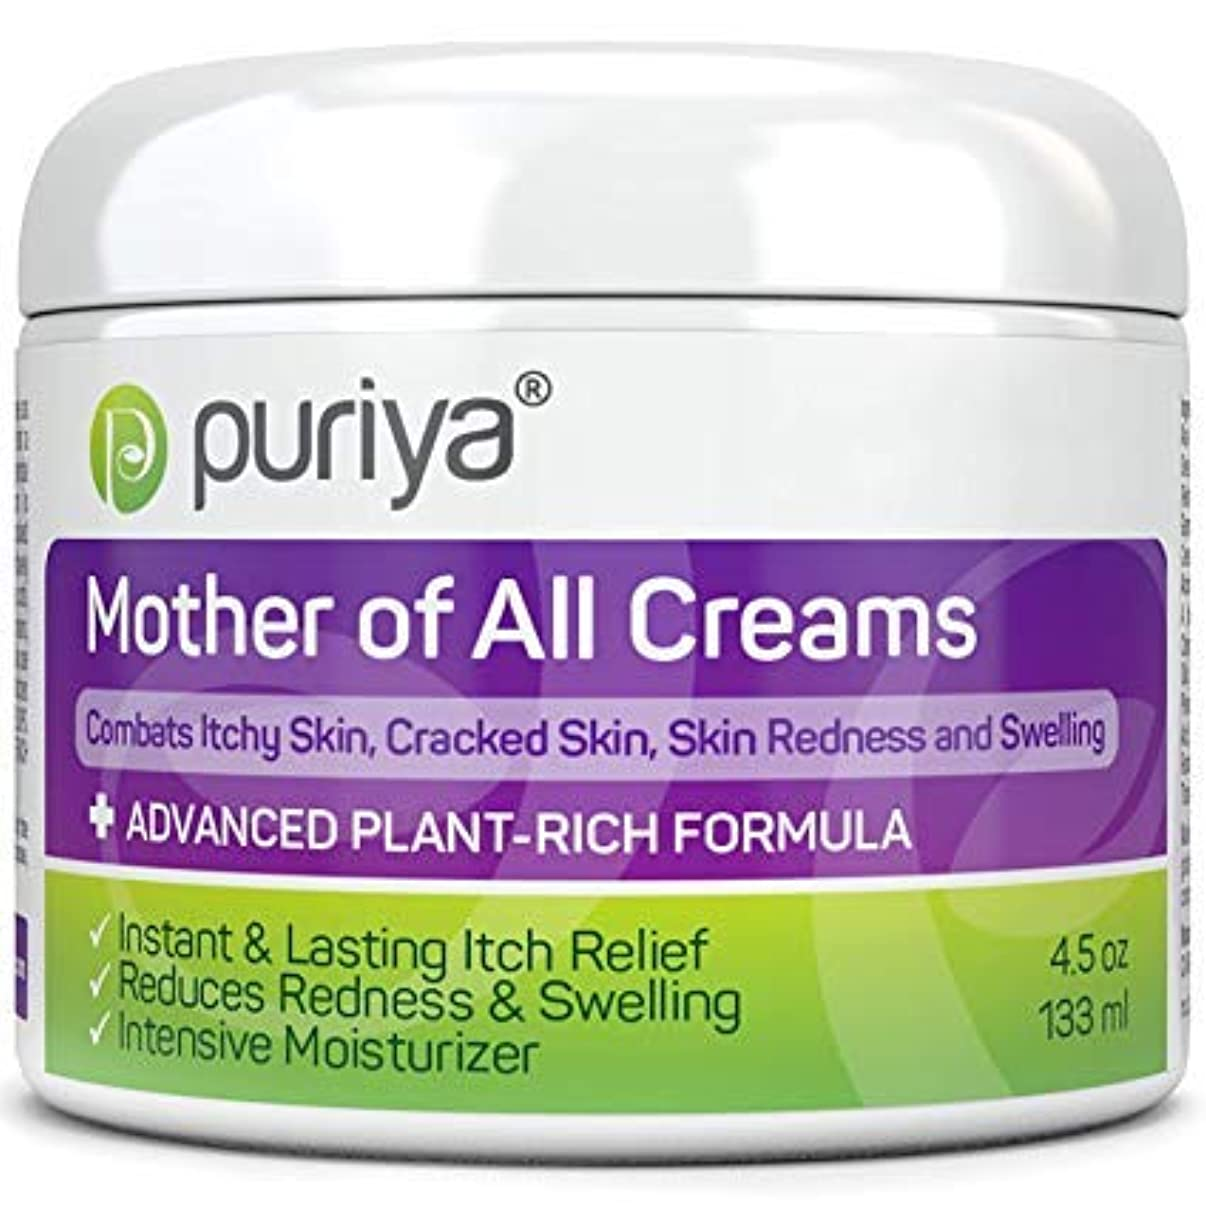 名目上のブラウスショルダーPuriya マザーオブオールクリーム Mother of All Creams Cream For Eczema, Psoriasis, Dermatitis and Rashes. Powerful Plant Rich...